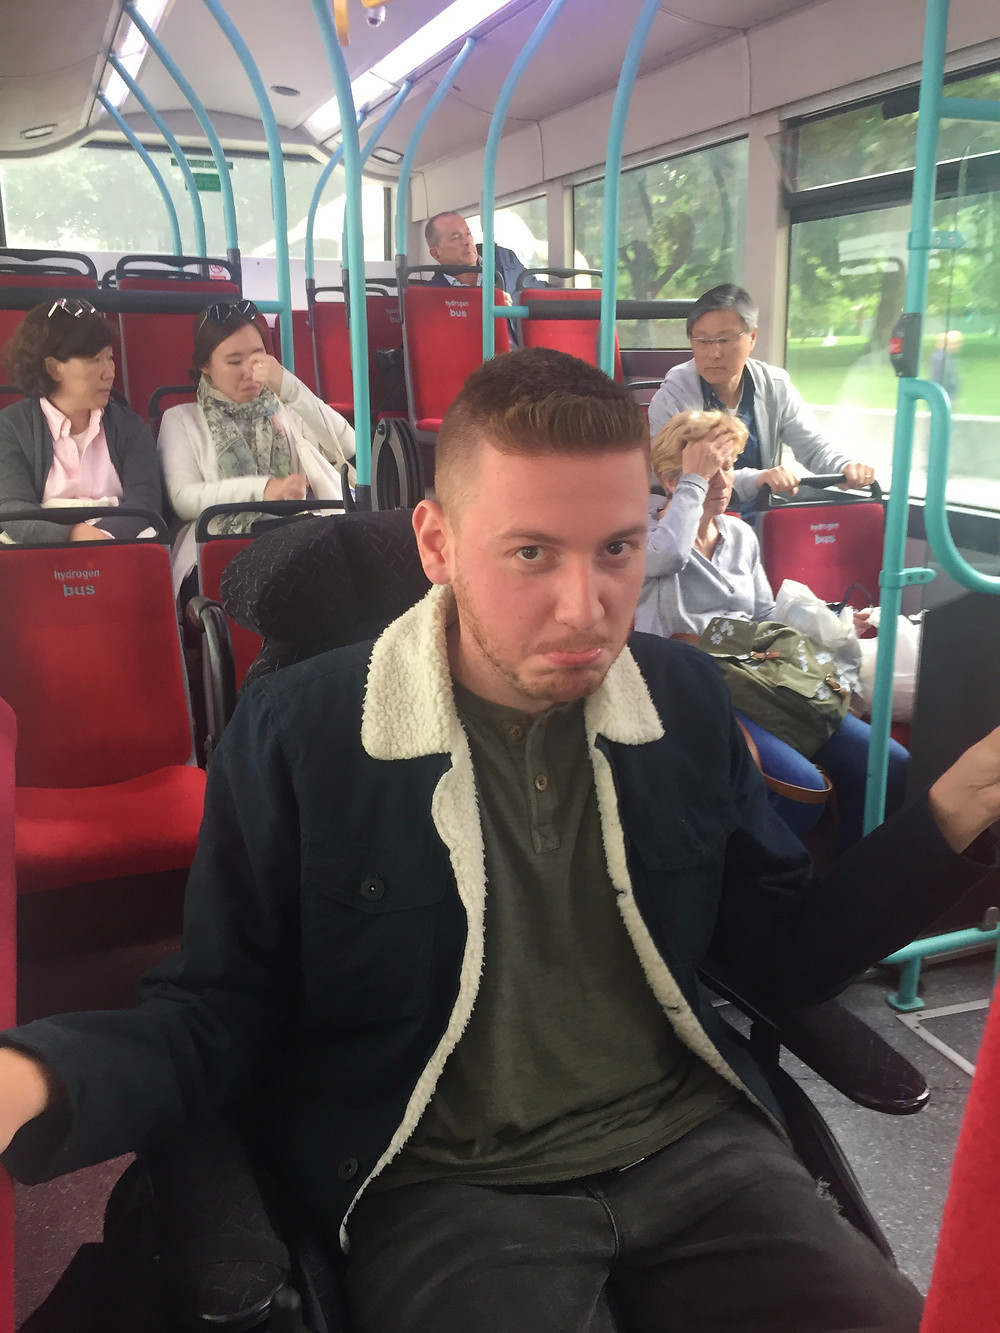 Ross pulling an unhappy face, whilst on the bus